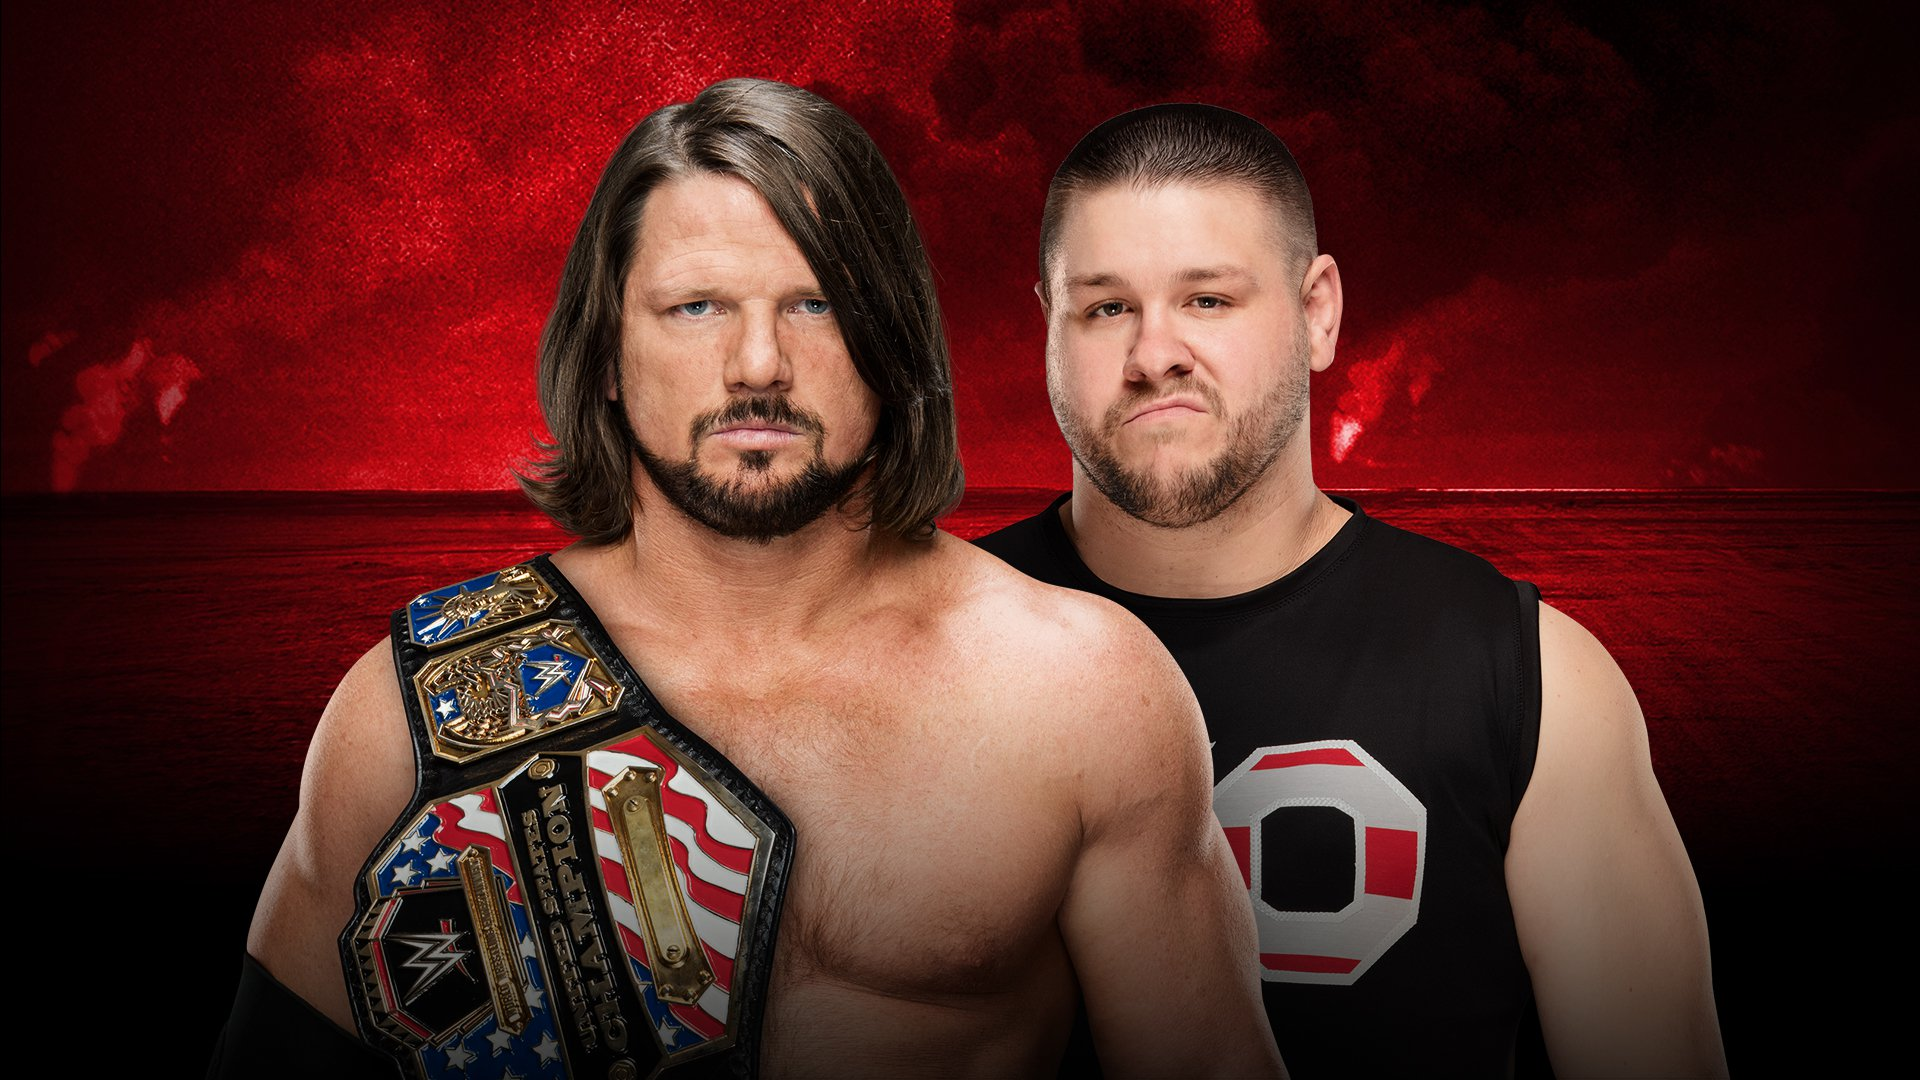 WWE Battleground 2017: AJ Styles vs. Kevin Owens